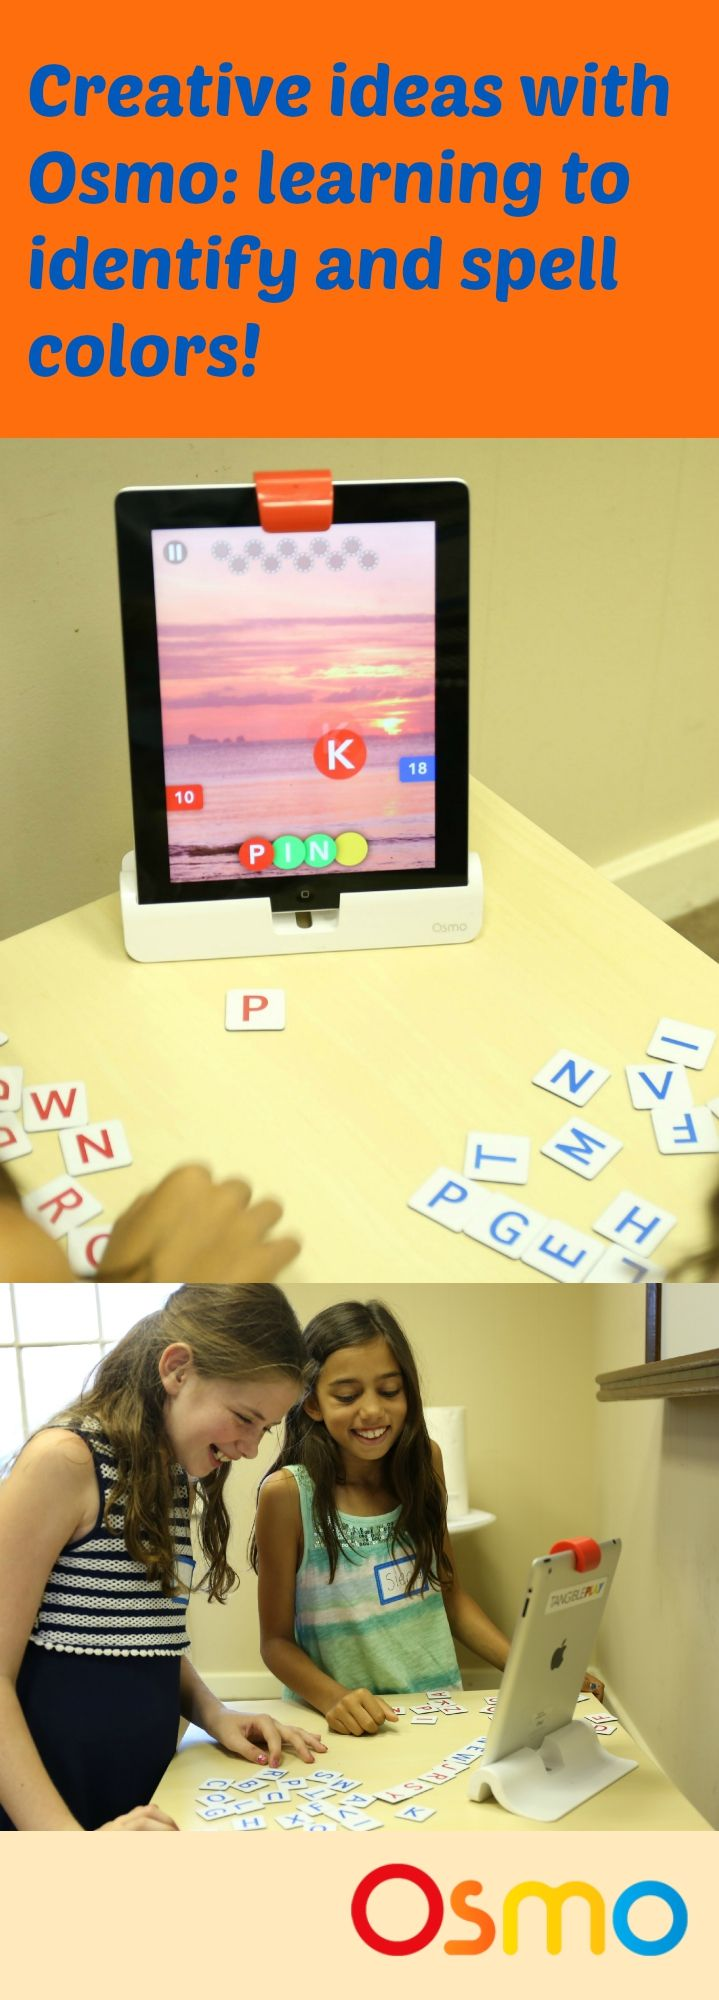 Revolutionize your classroom with Osmo.    Here is a great way to customize the Words game to teach identification and spelling of colors!   This activity can be played in groups of 2-3 and can be customized to be on easy mode for the youngest ages, or more difficult for older children.    For more information on Osmo in schools visit: https://www.playosmo.com/en/schools/